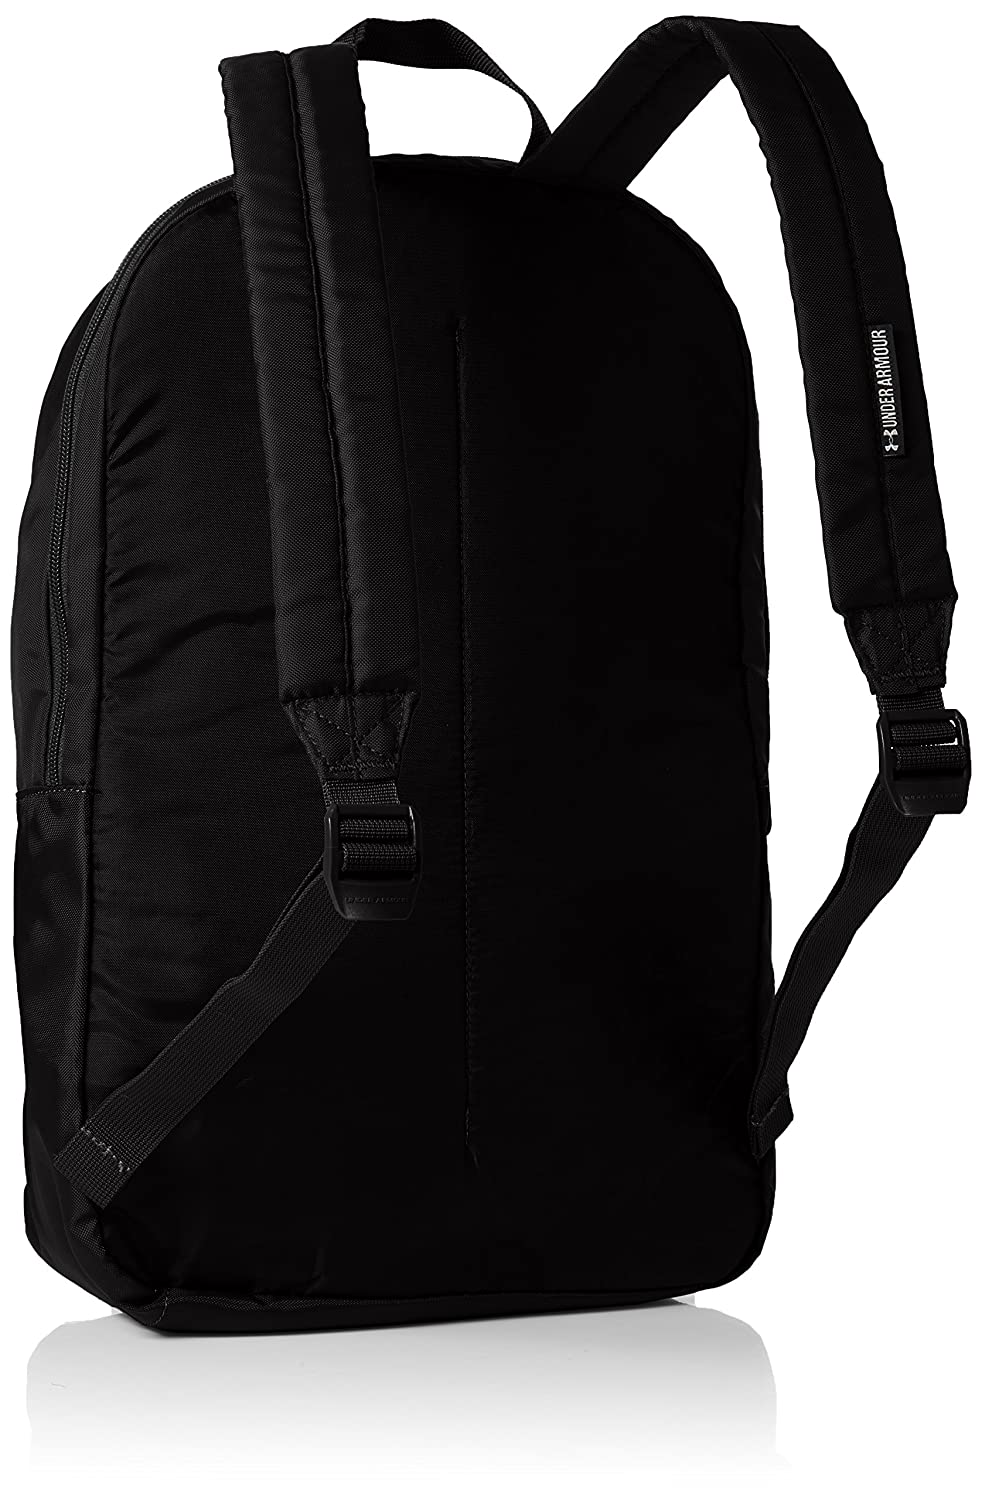 c4787276681a Project 5 Unisex Backpack  Amazon.co.uk  Sports   Outdoors